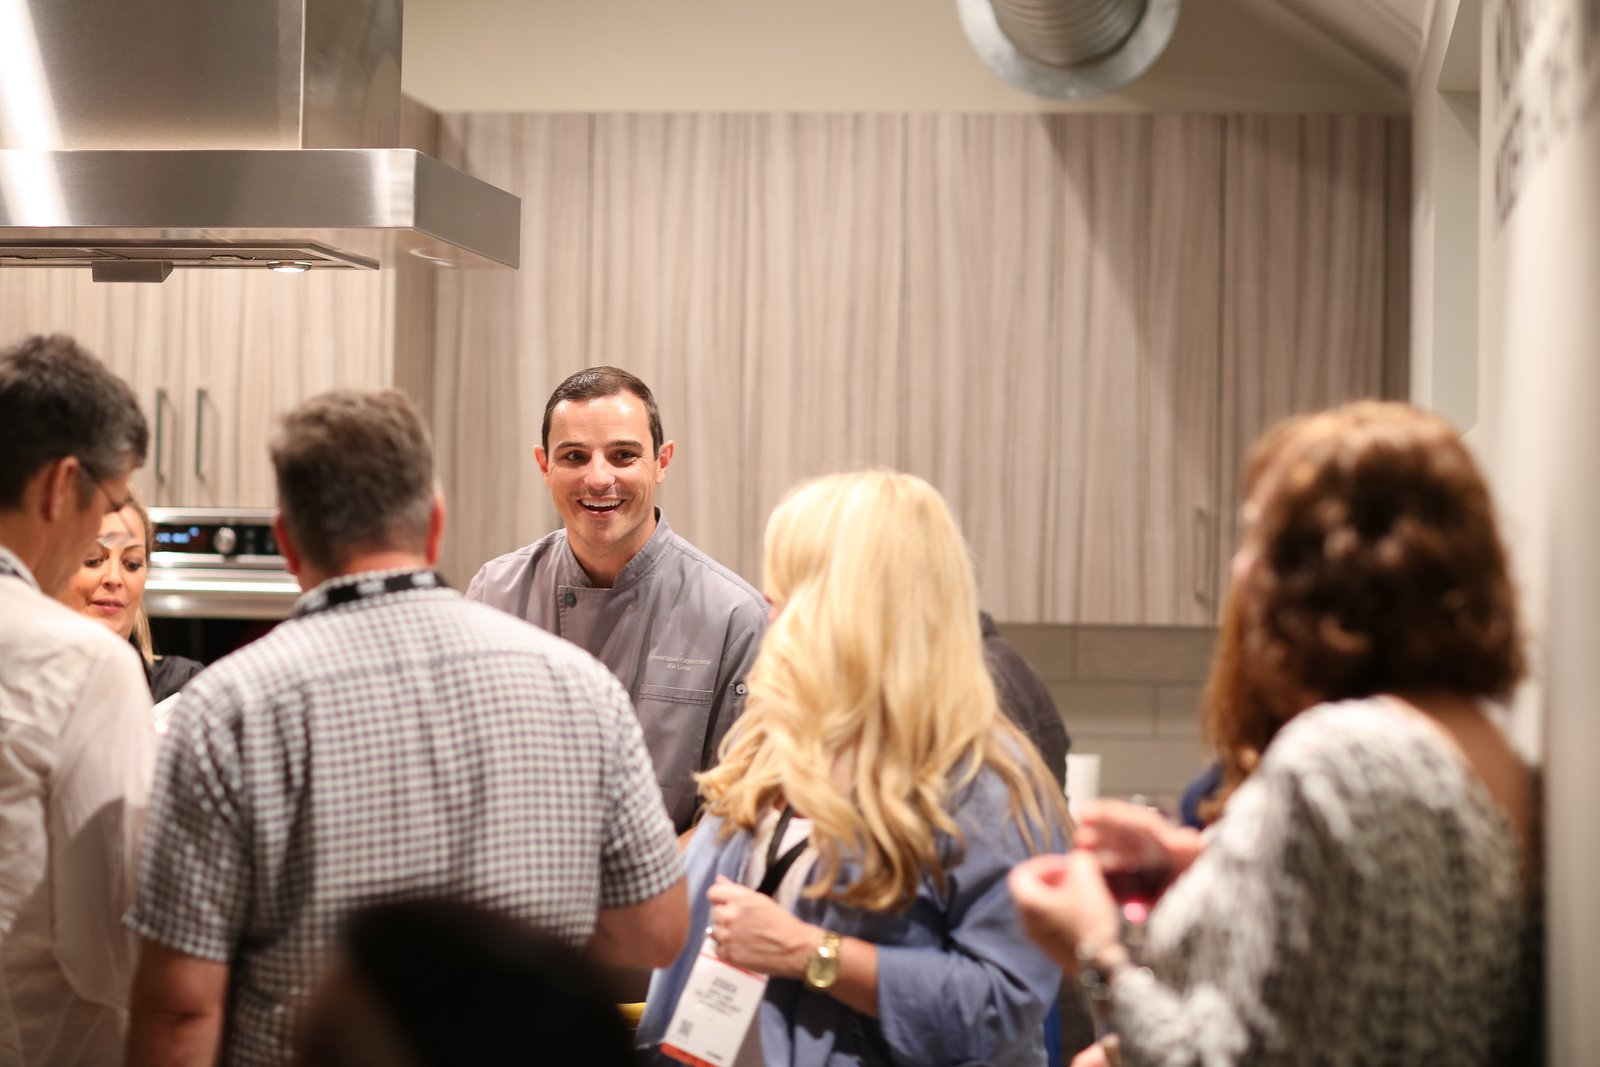 Monogram Modern Home 2016 – Los Angeles at DODLA #MMHT#DODLA#monogrammodern  Monogram Modern Home Tour 2016: Seattle, S.F., L.A. by Monogram Appliances